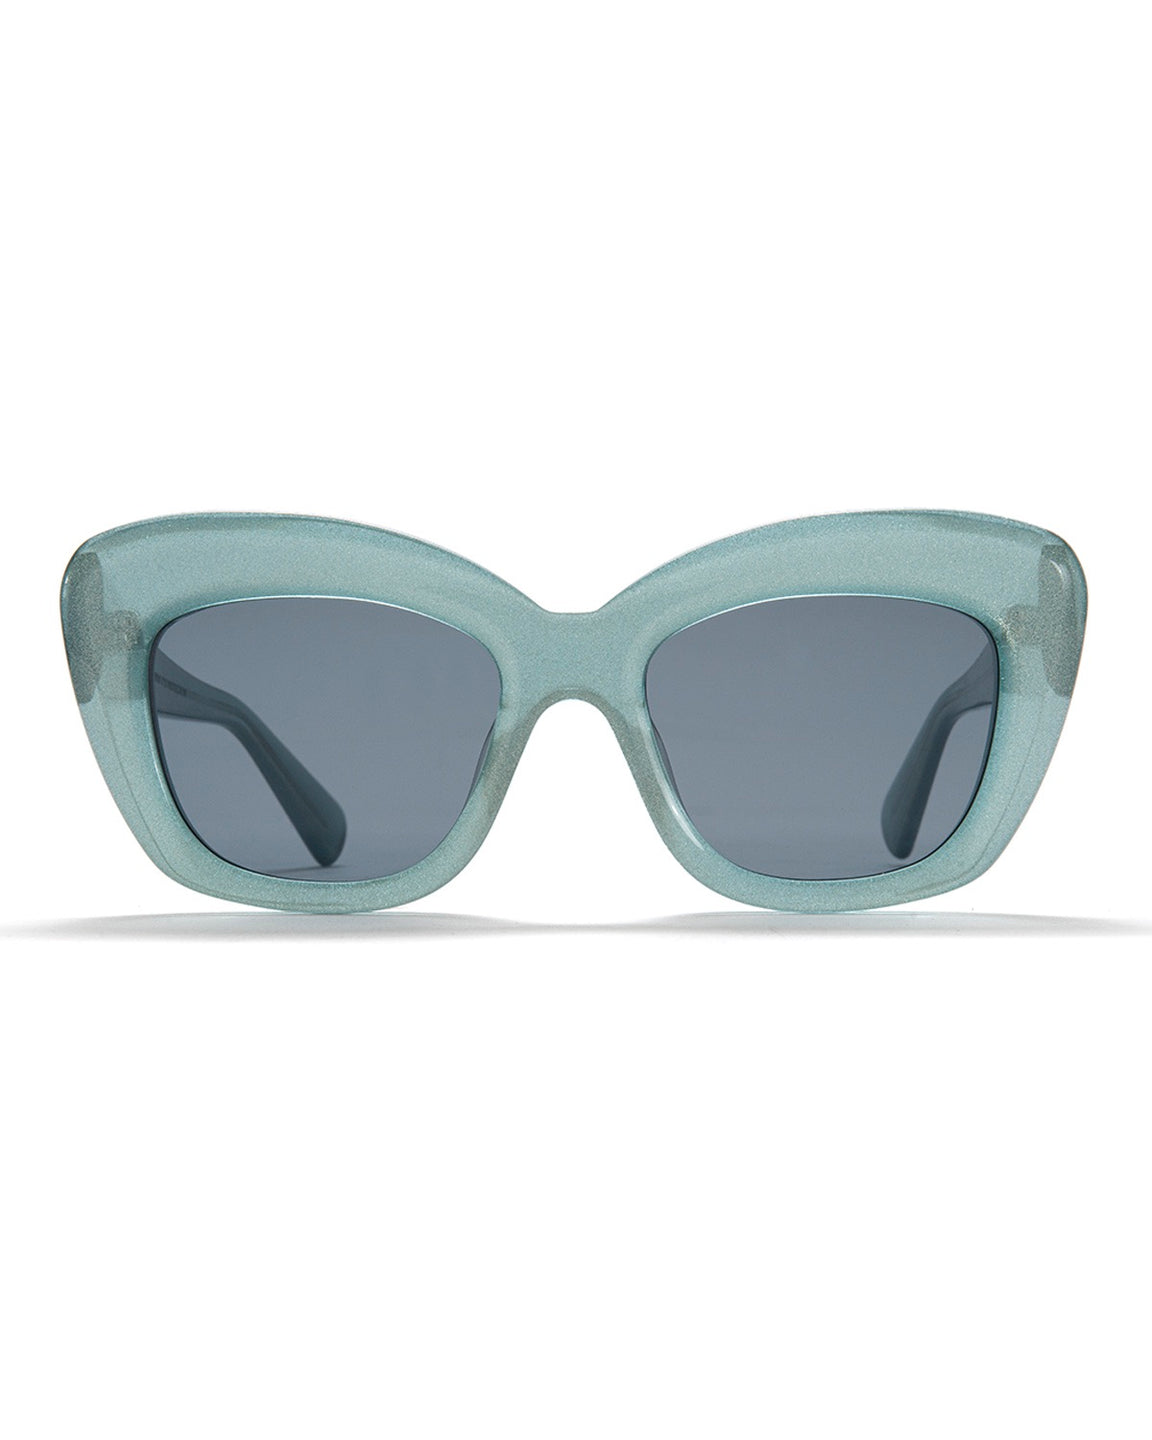 Chibi Sunglasses - Silver Flake Finish